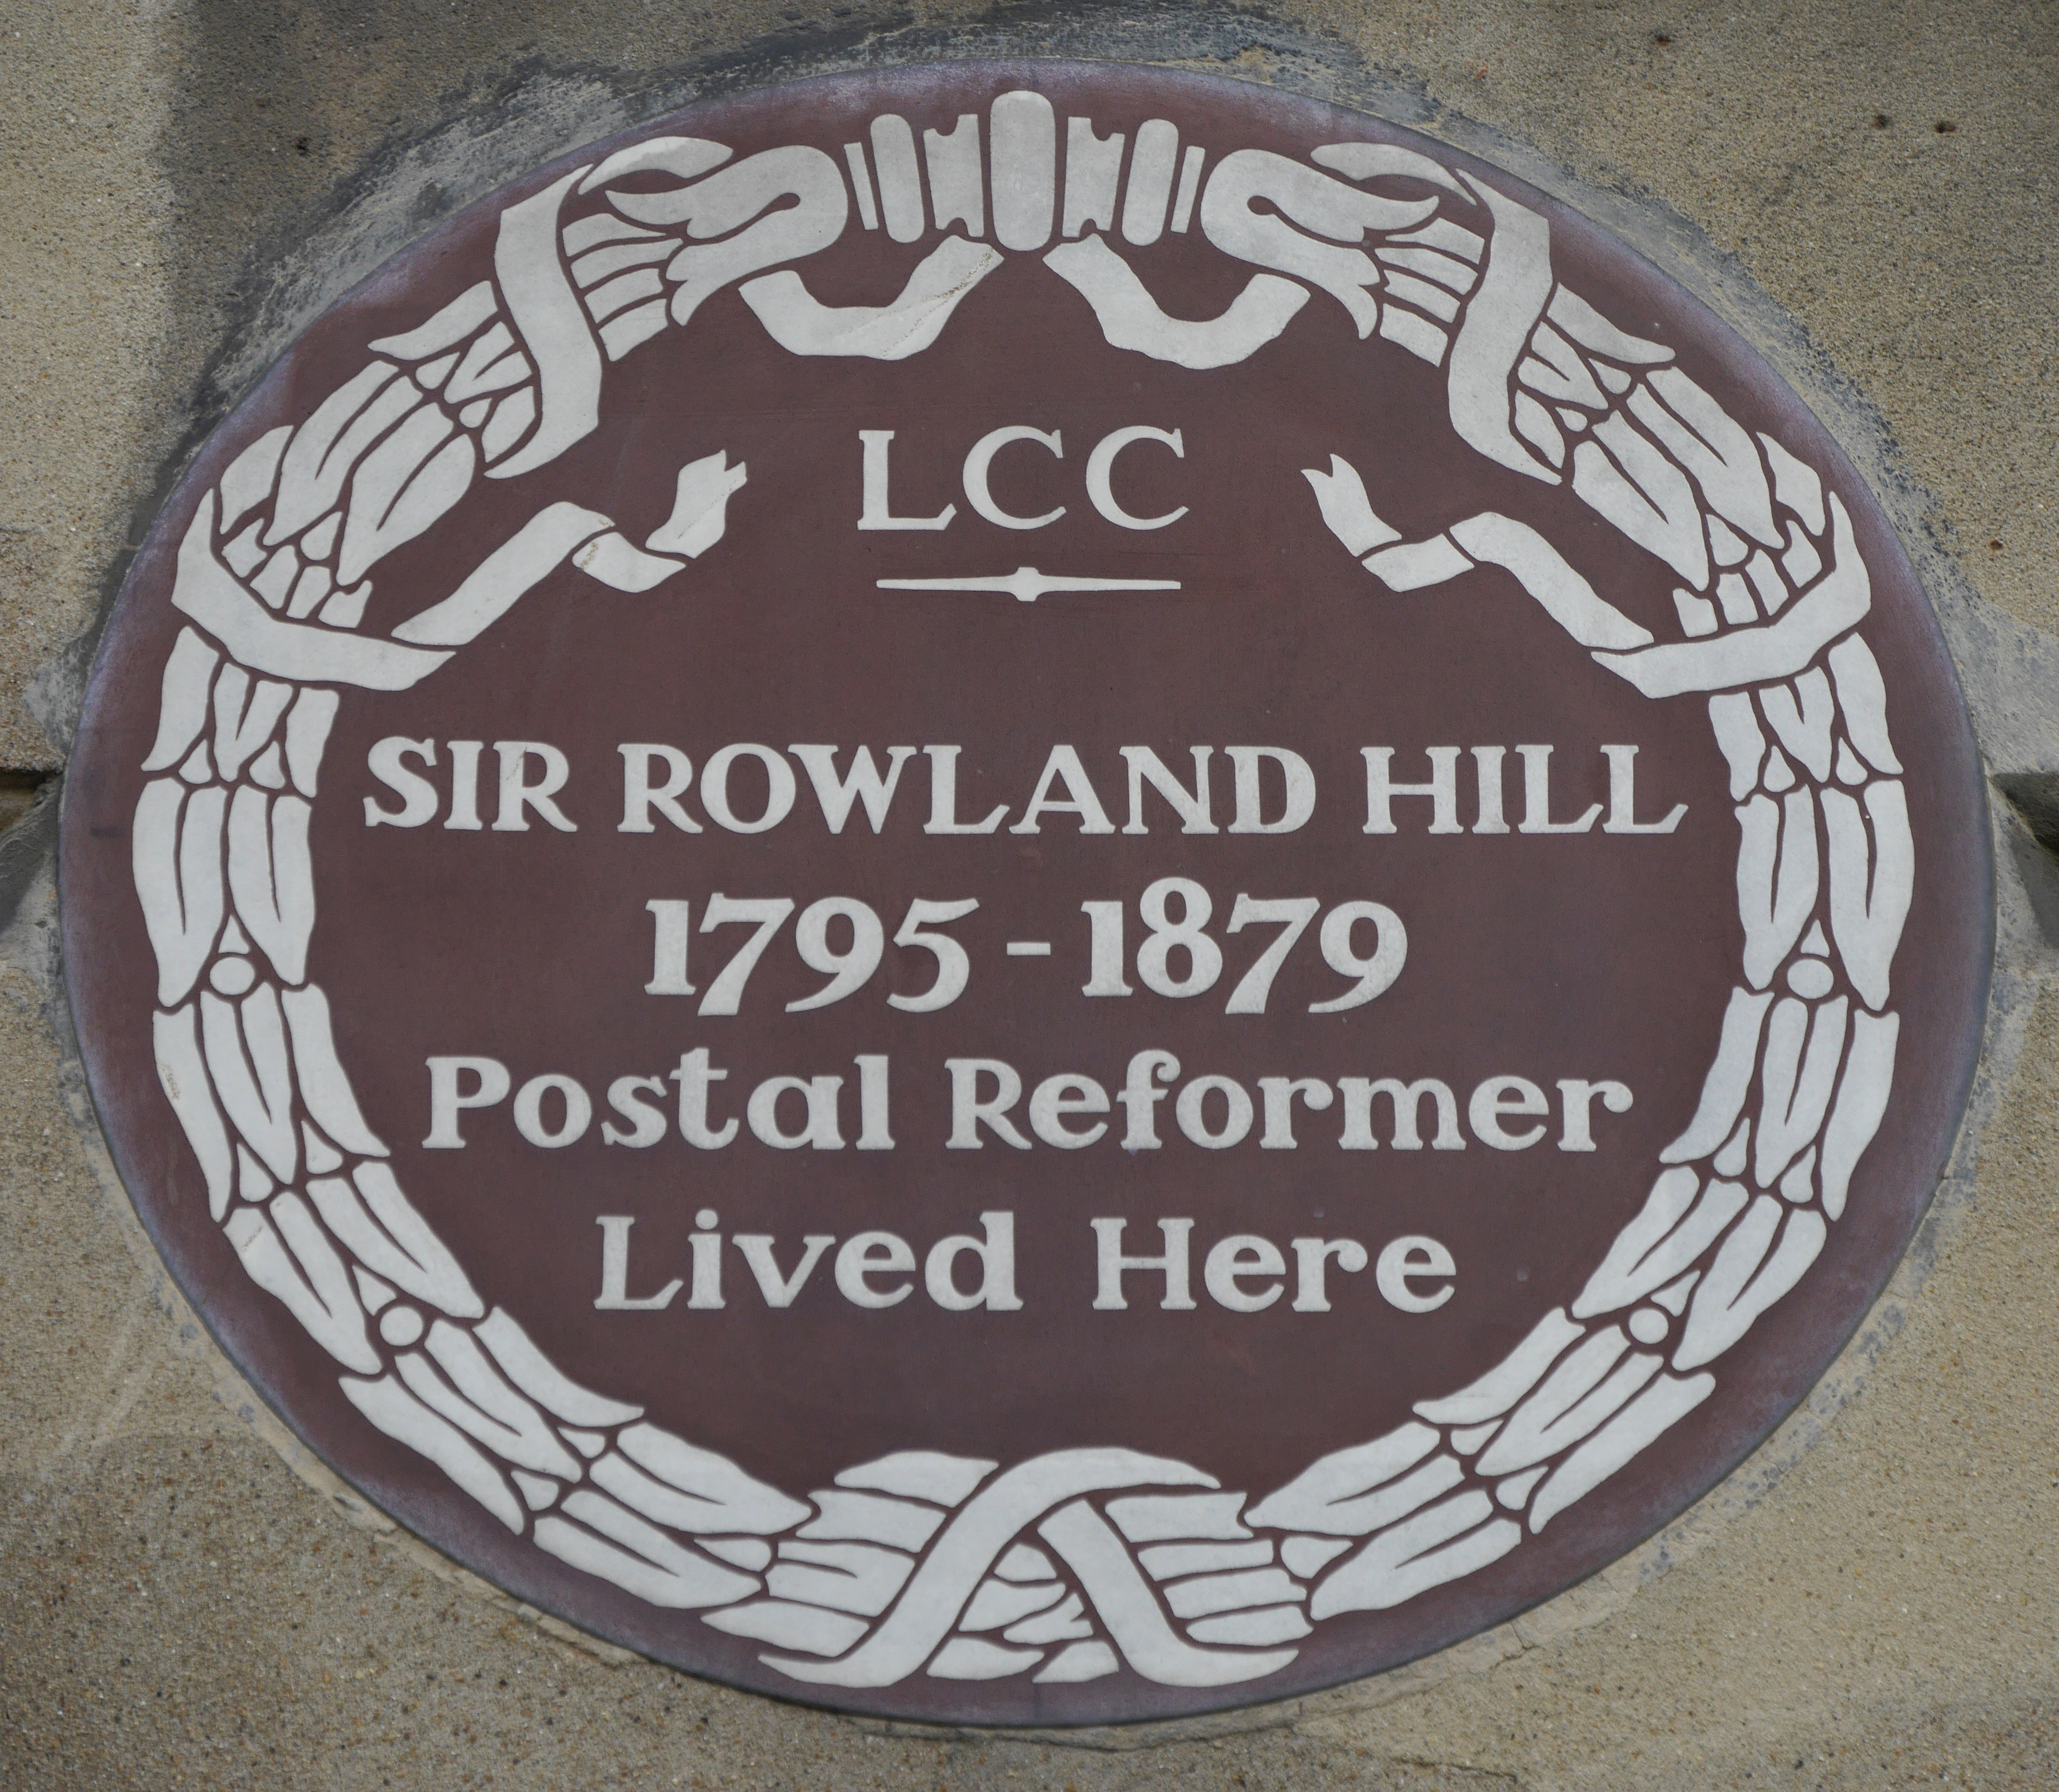 Plaque at 1-2 Orme Square, Bayswater, London, W2, where Rowland Hill lived from 1839 until 1842.